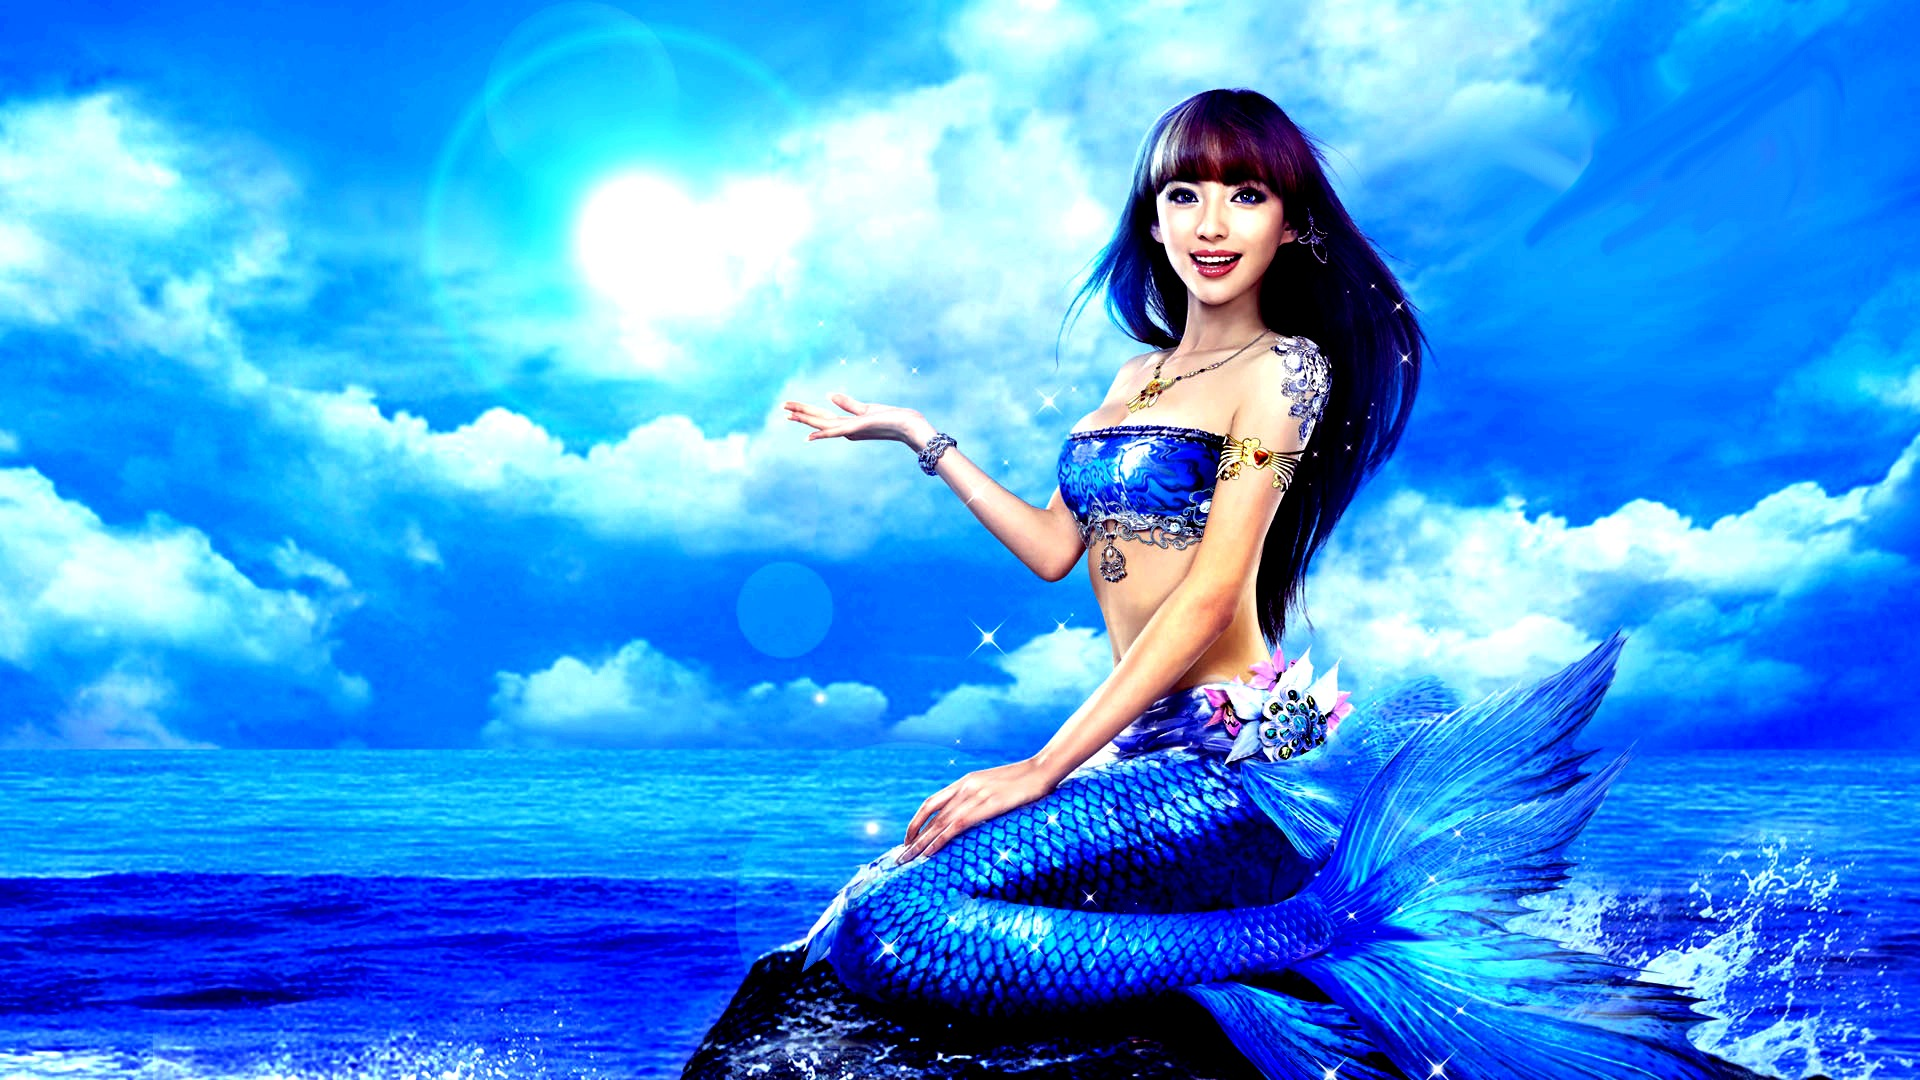 fantasy images mermaid hd wallpaper and background photos